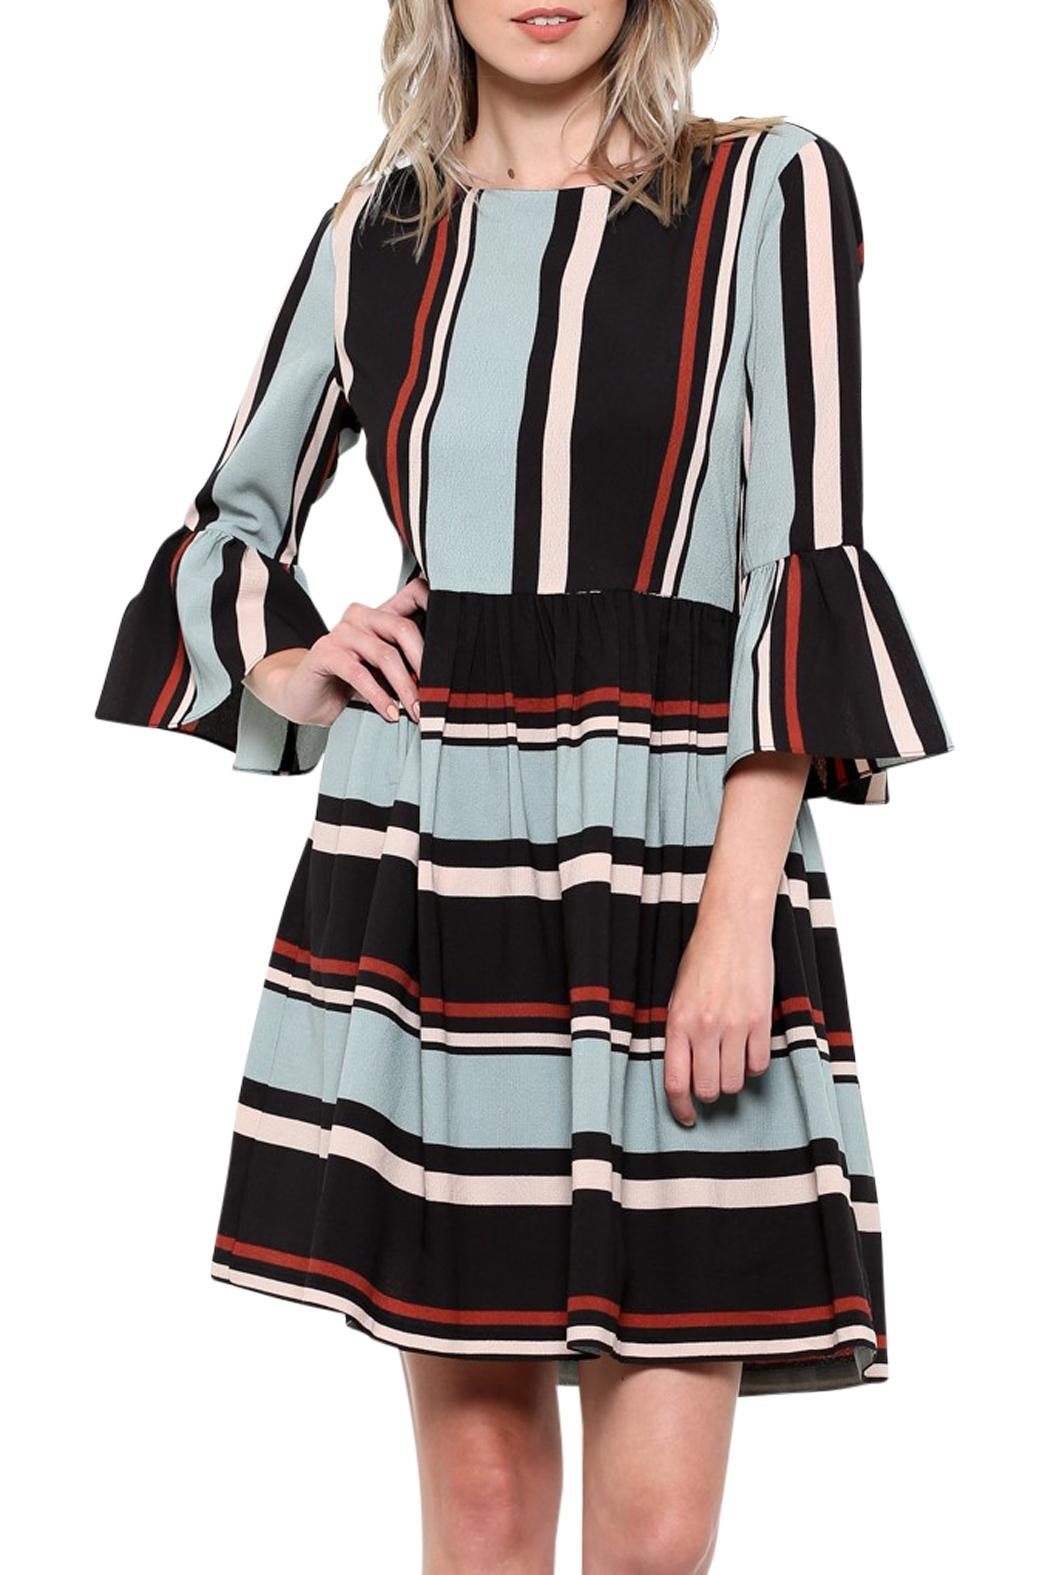 Elegance by Sarah Ruhs Striped Bell-Sleeve Dress - Main Image